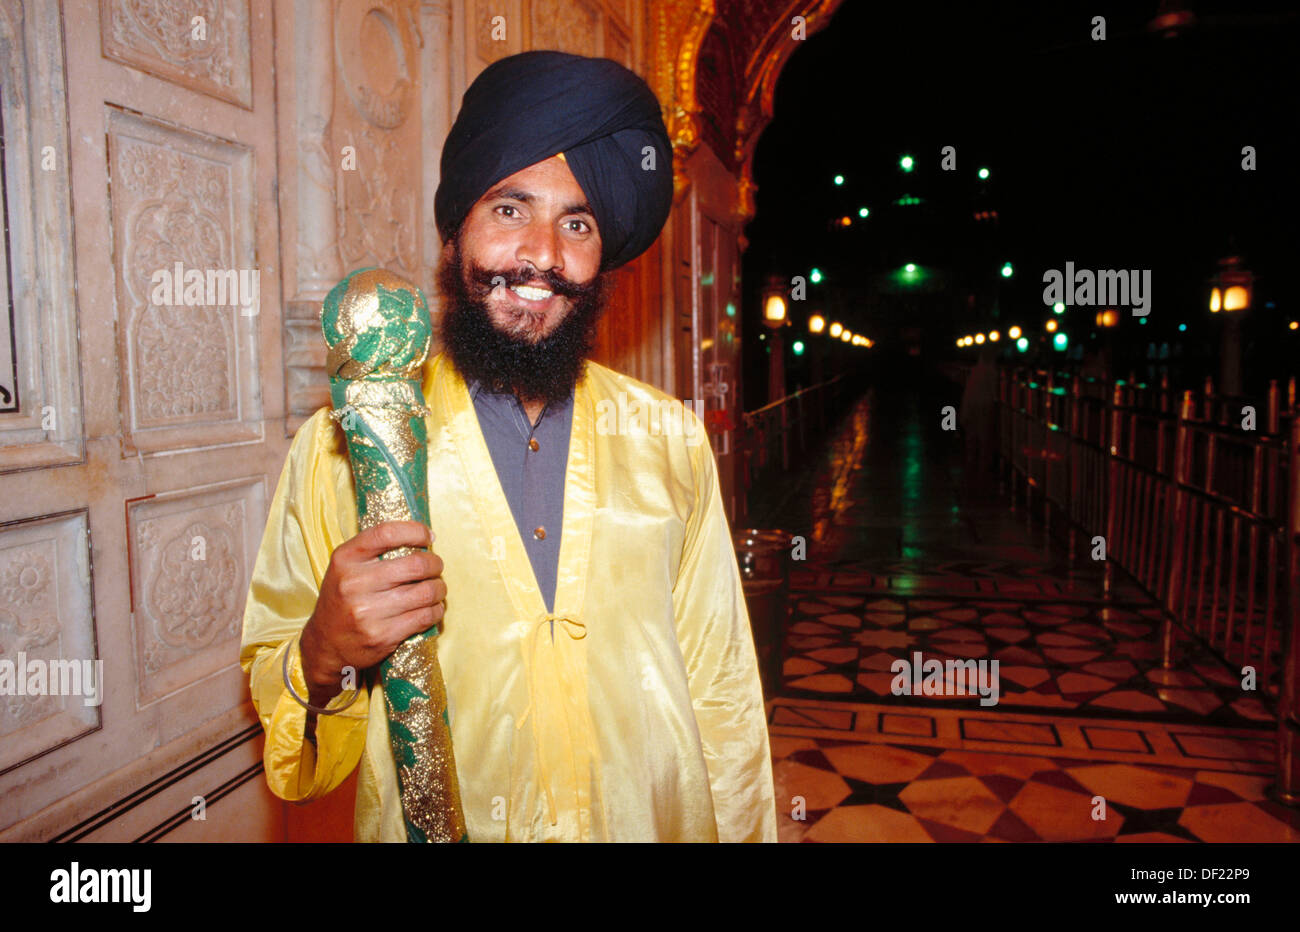 Master of ceremonies at the Golden Temple. Amritsar, India - Stock Image